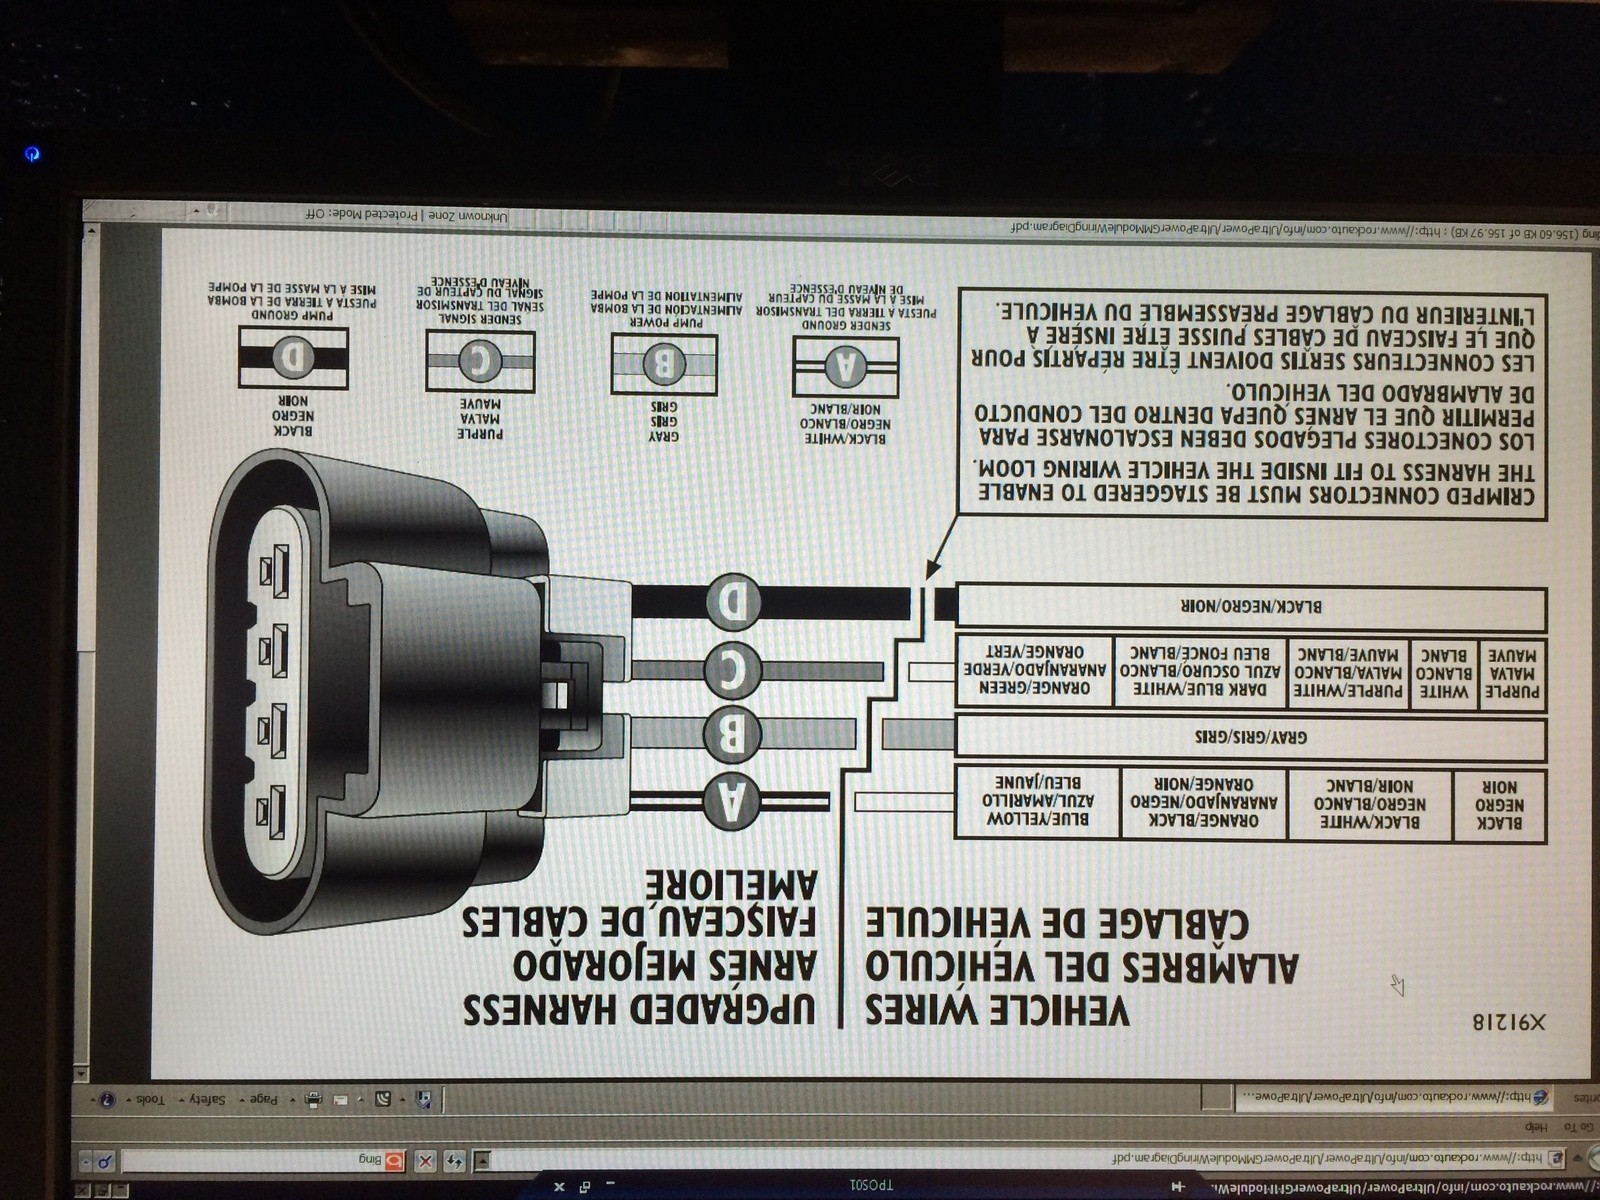 97 S10 Fuel Pump Wiring Diagram from static-cdn.imageservice.cloud